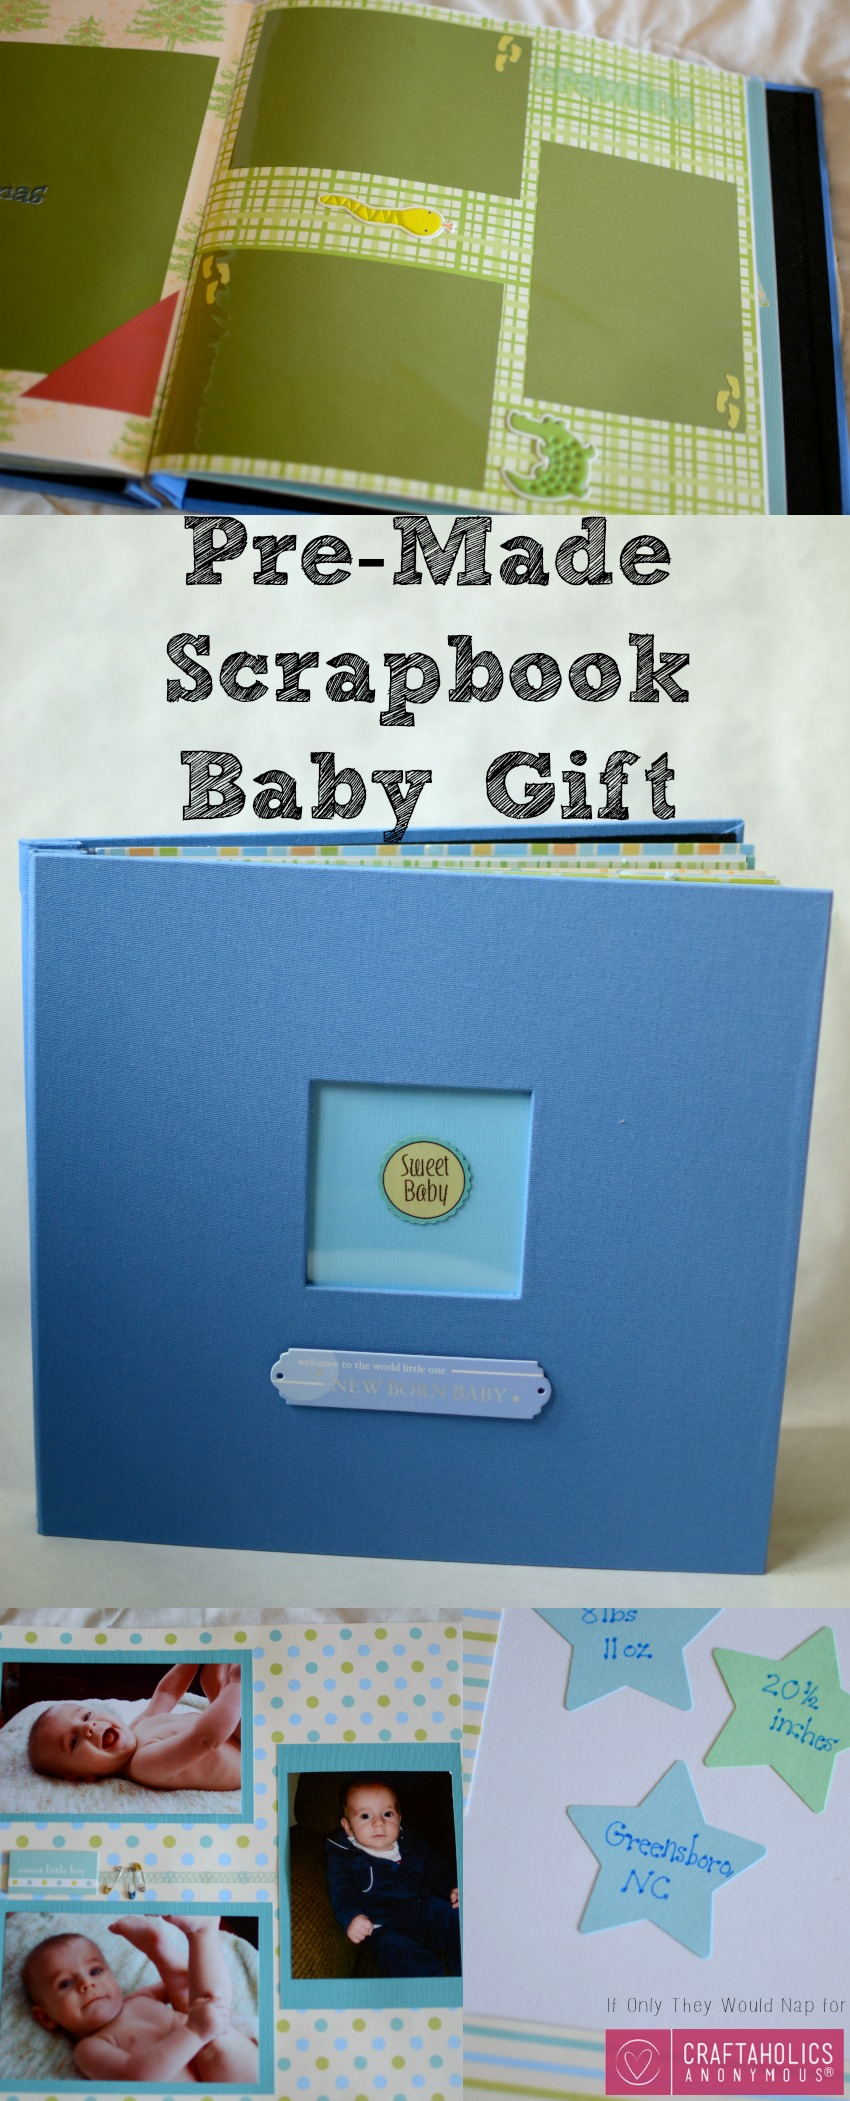 Make a pre made Scrapbook for a baby gift